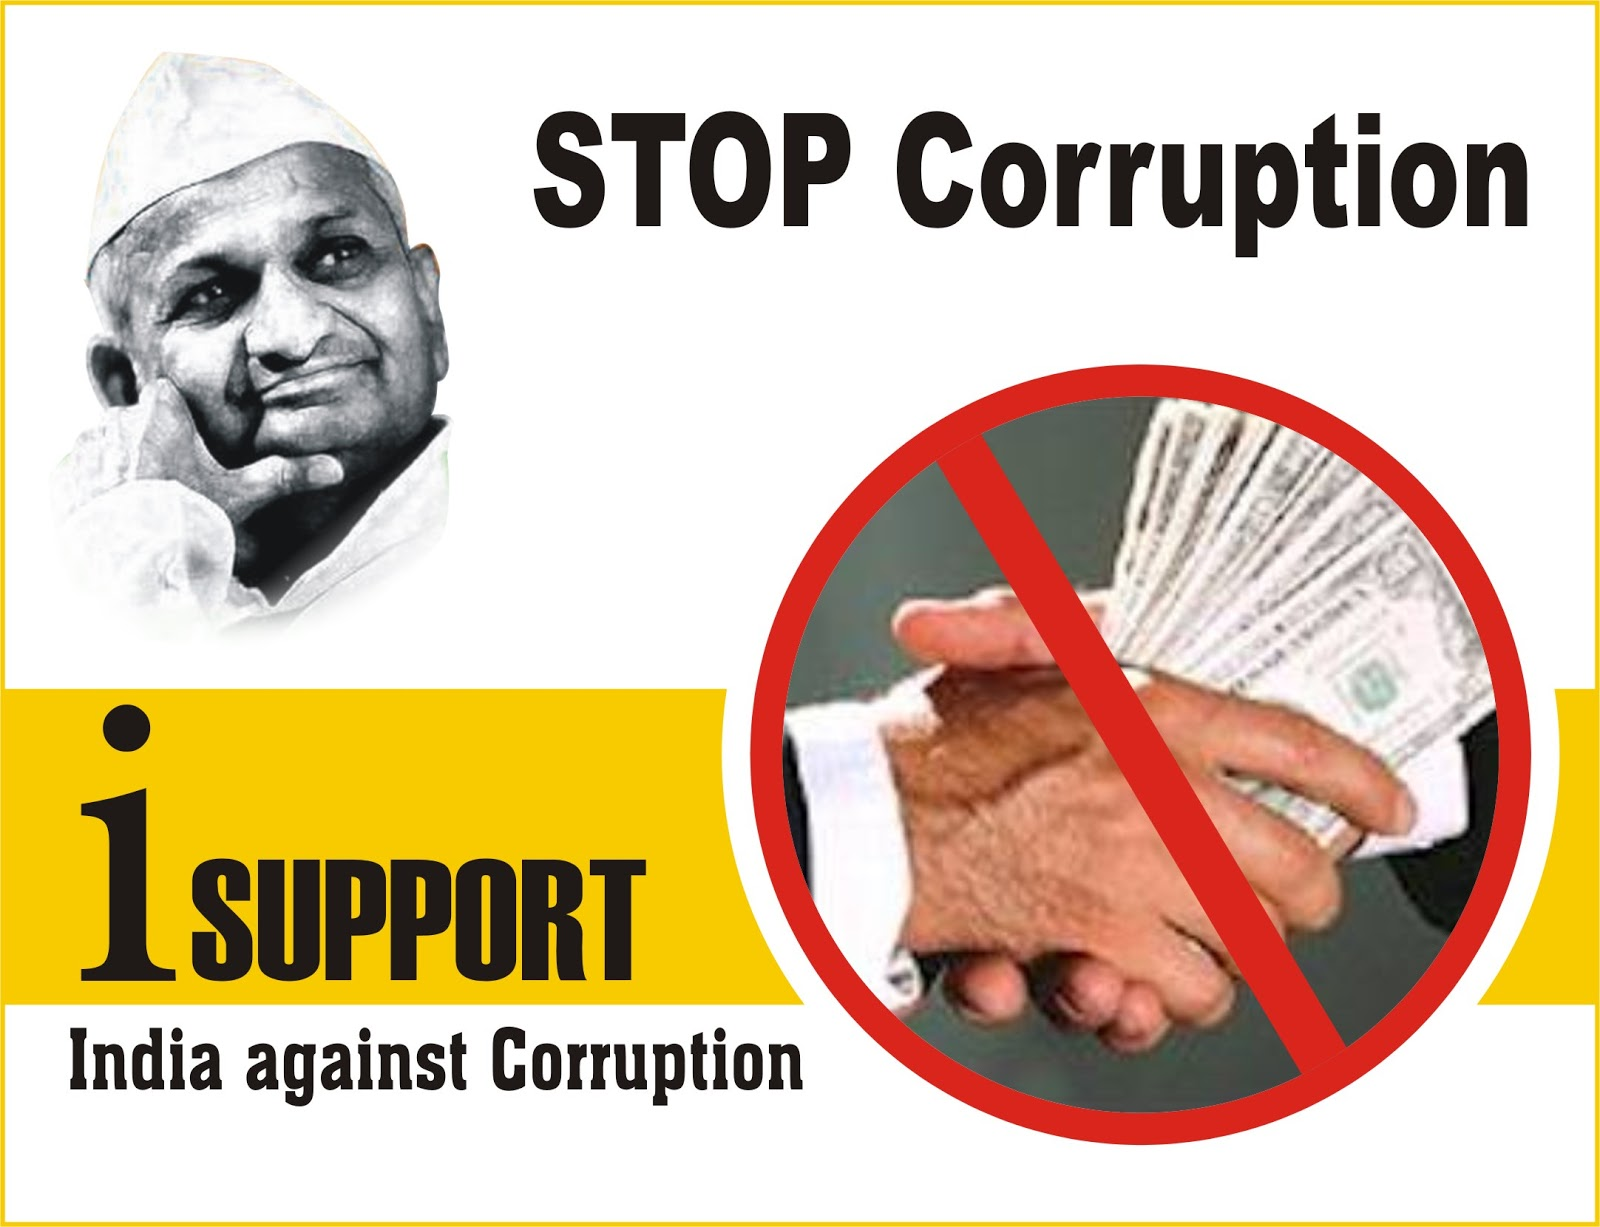 Corruption Poster: Fight against Corruption